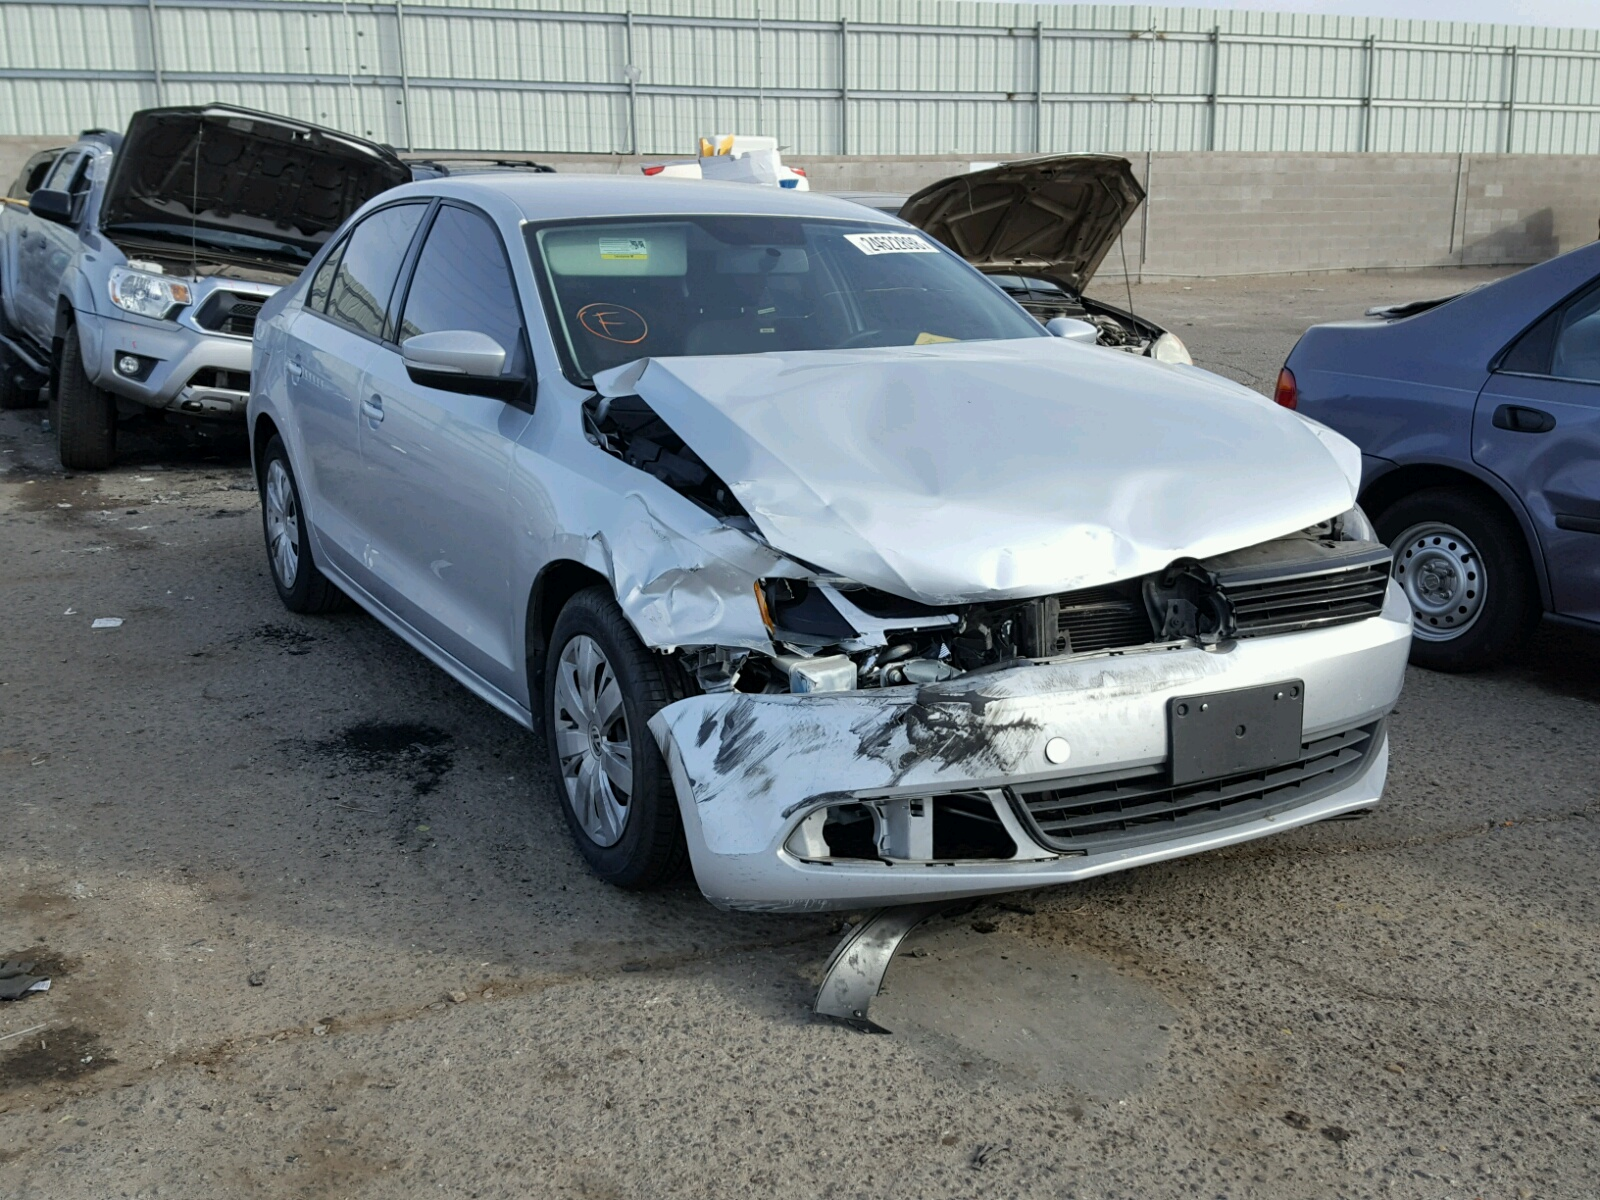 base auto salvage of on copart jetta online carfinder albuquerque title nm cert sale en gray in auctions lot volkswagen